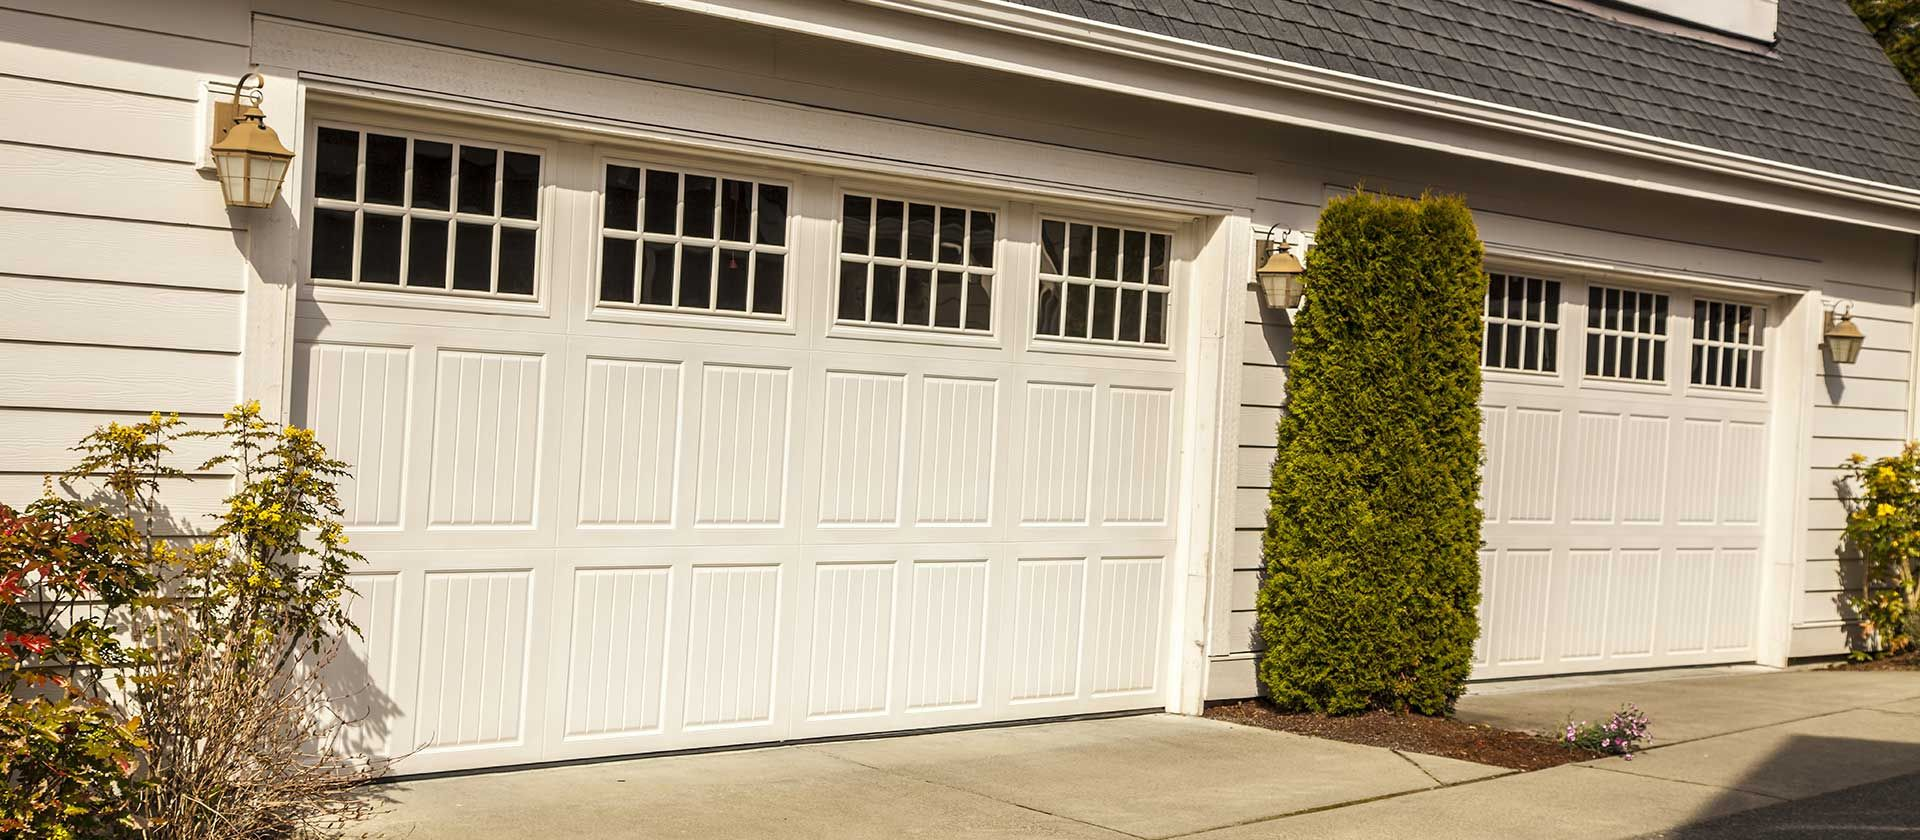 Long Island NY Garage Door Repair Is The Best Company For Garage Door  Repair In Valley Stream NY. We Provide All Garage Door Service At Low  Prices.